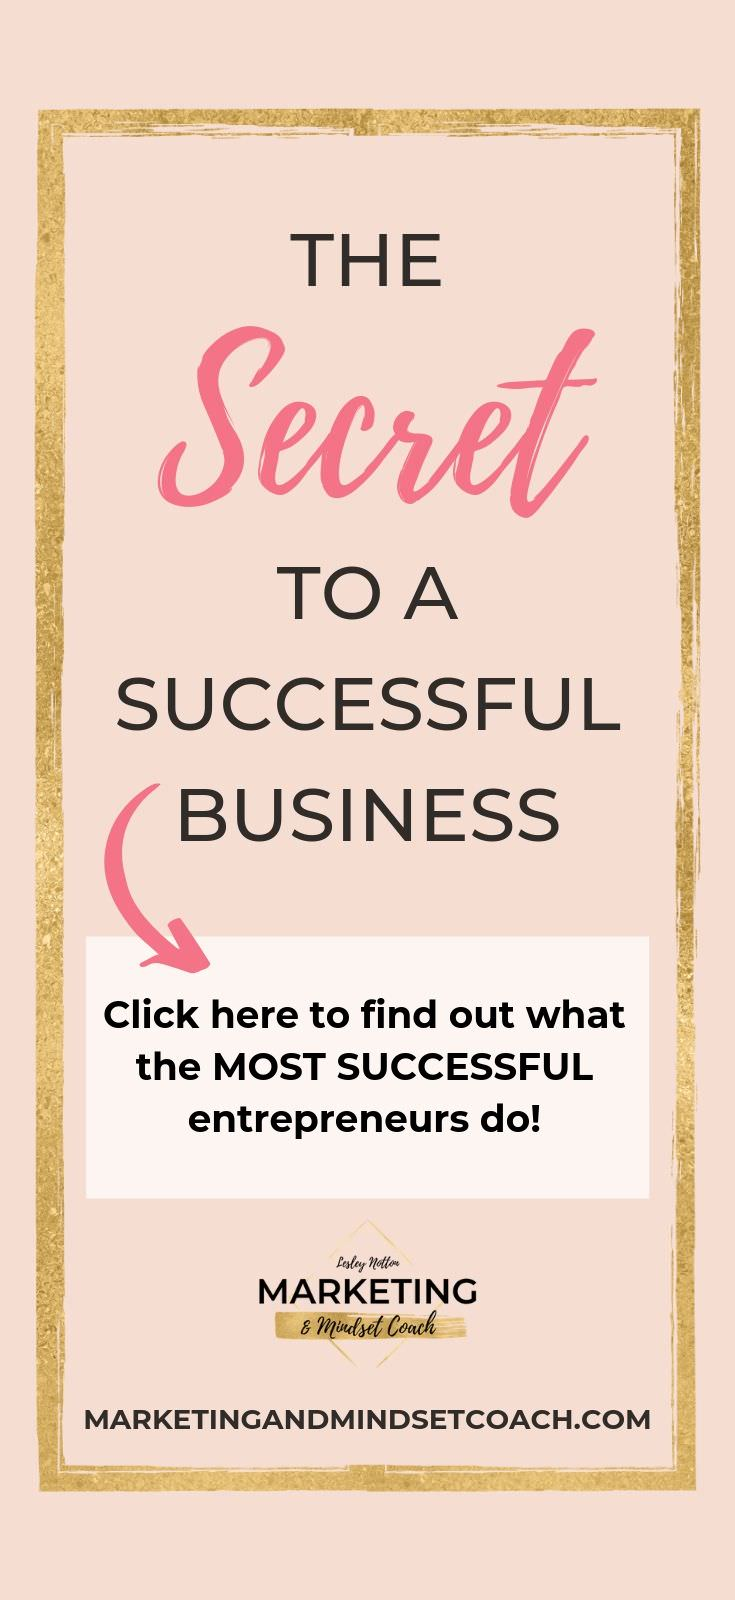 SUCCESS TIP BUSINESS OWNERS